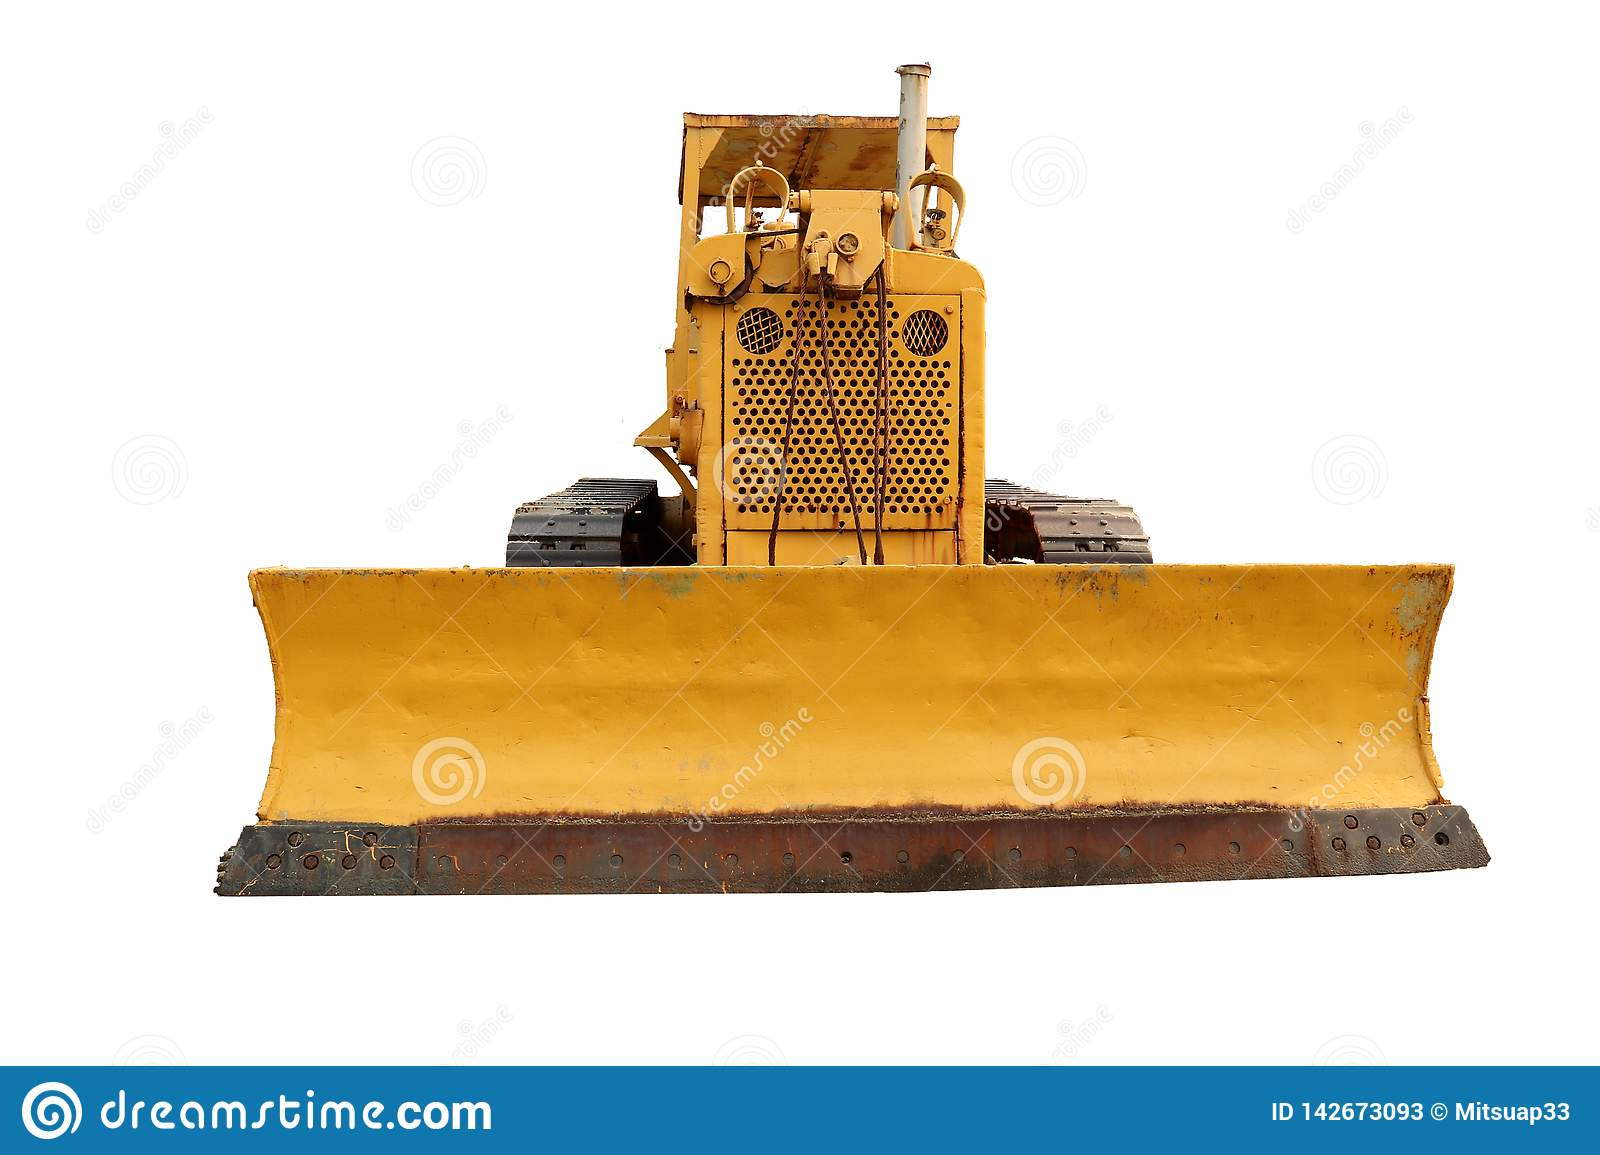 Old yellow rusty crawler tractor in the field. Old crawler tractor .isolated on white background